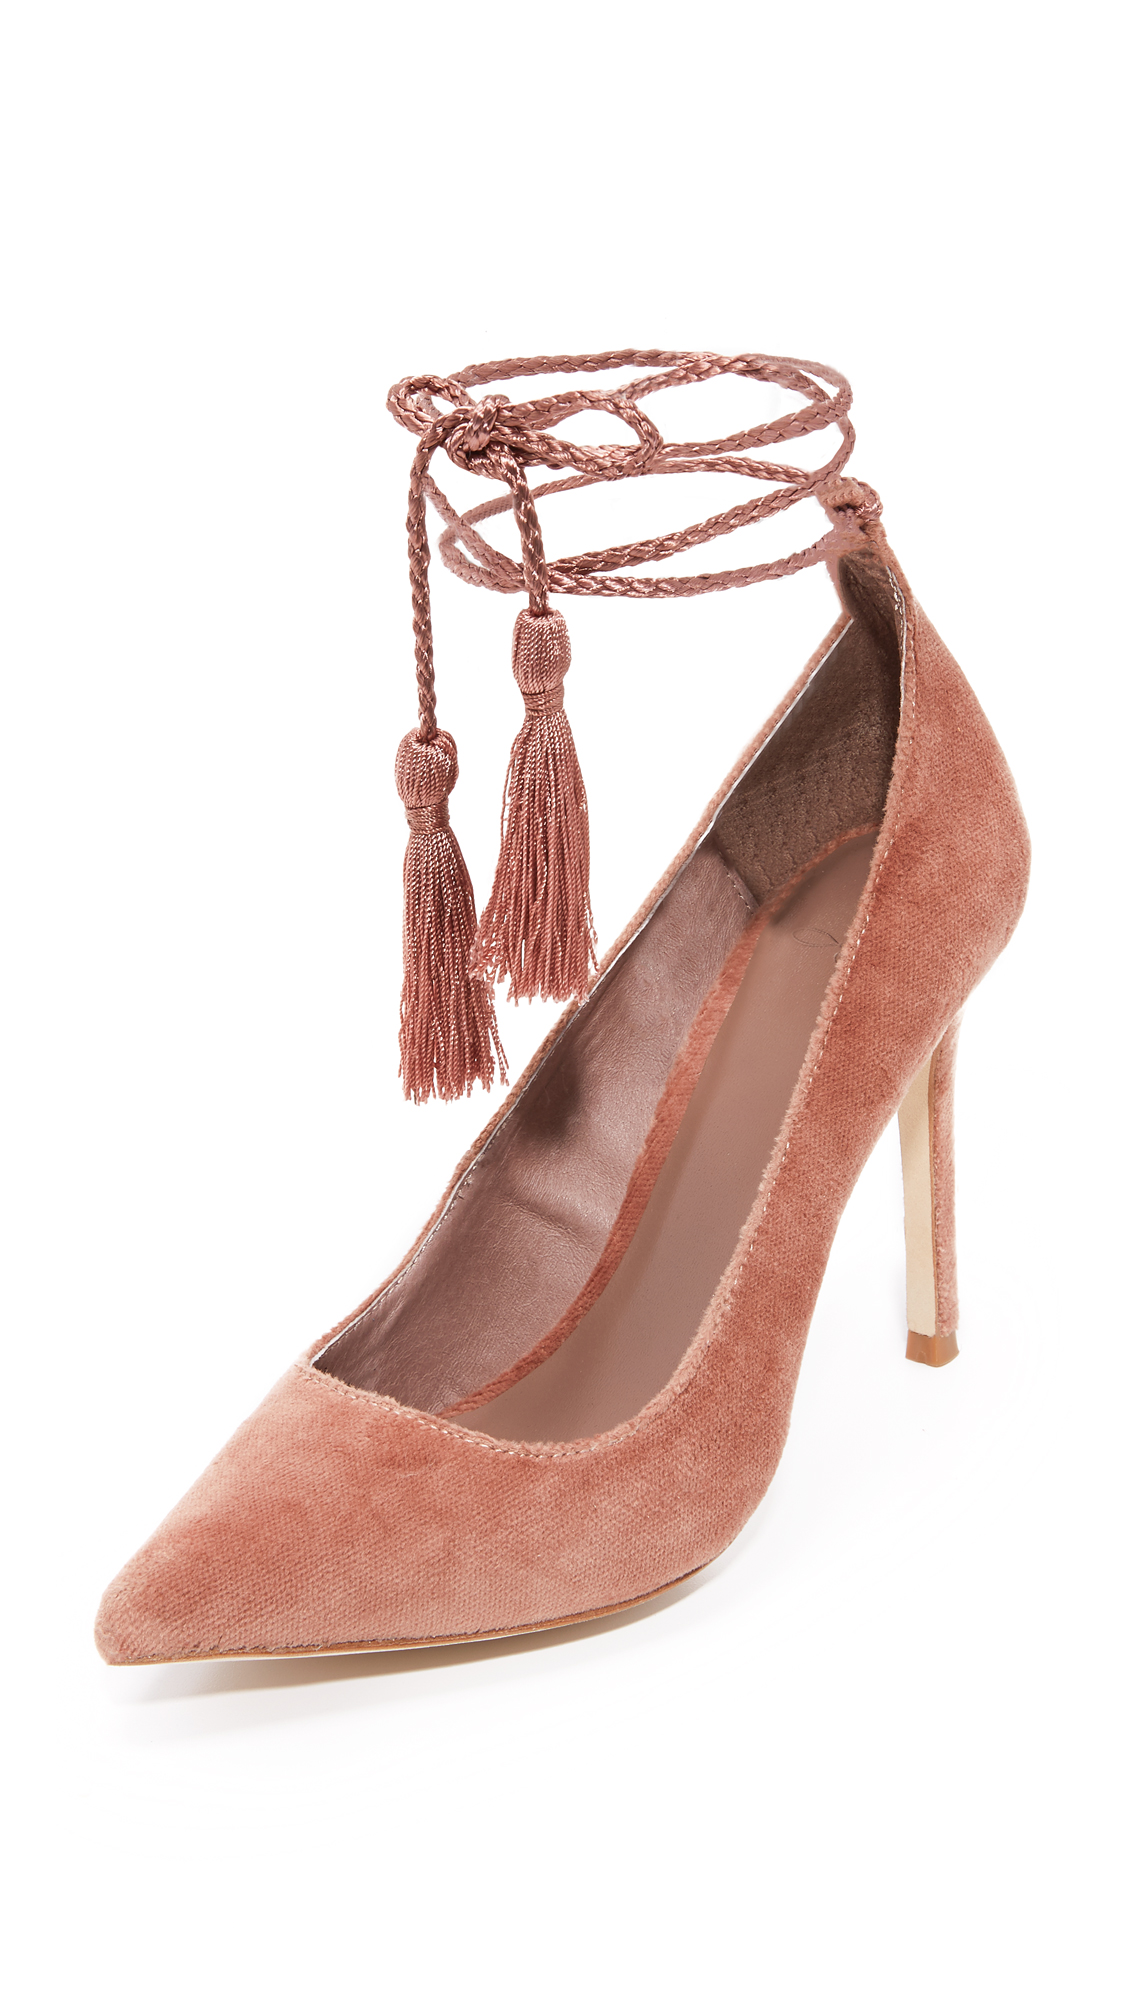 Joie Angelynn Ankle Wrap Pumps - Vintage Rose at Shopbop